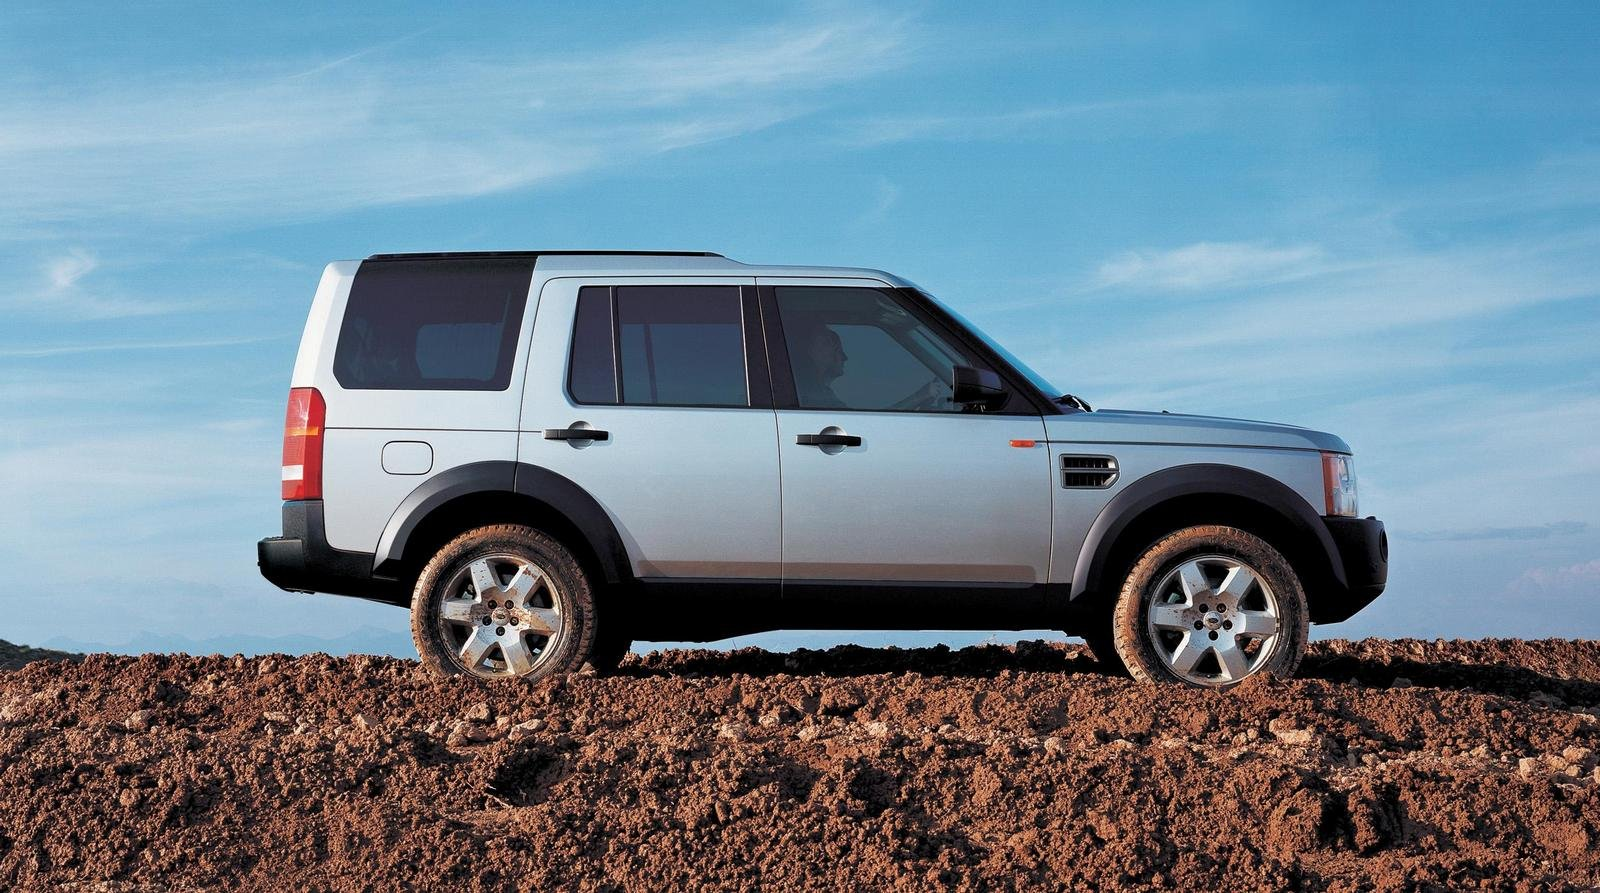 2007 land rover discovery picture 146465 car review top speed. Black Bedroom Furniture Sets. Home Design Ideas